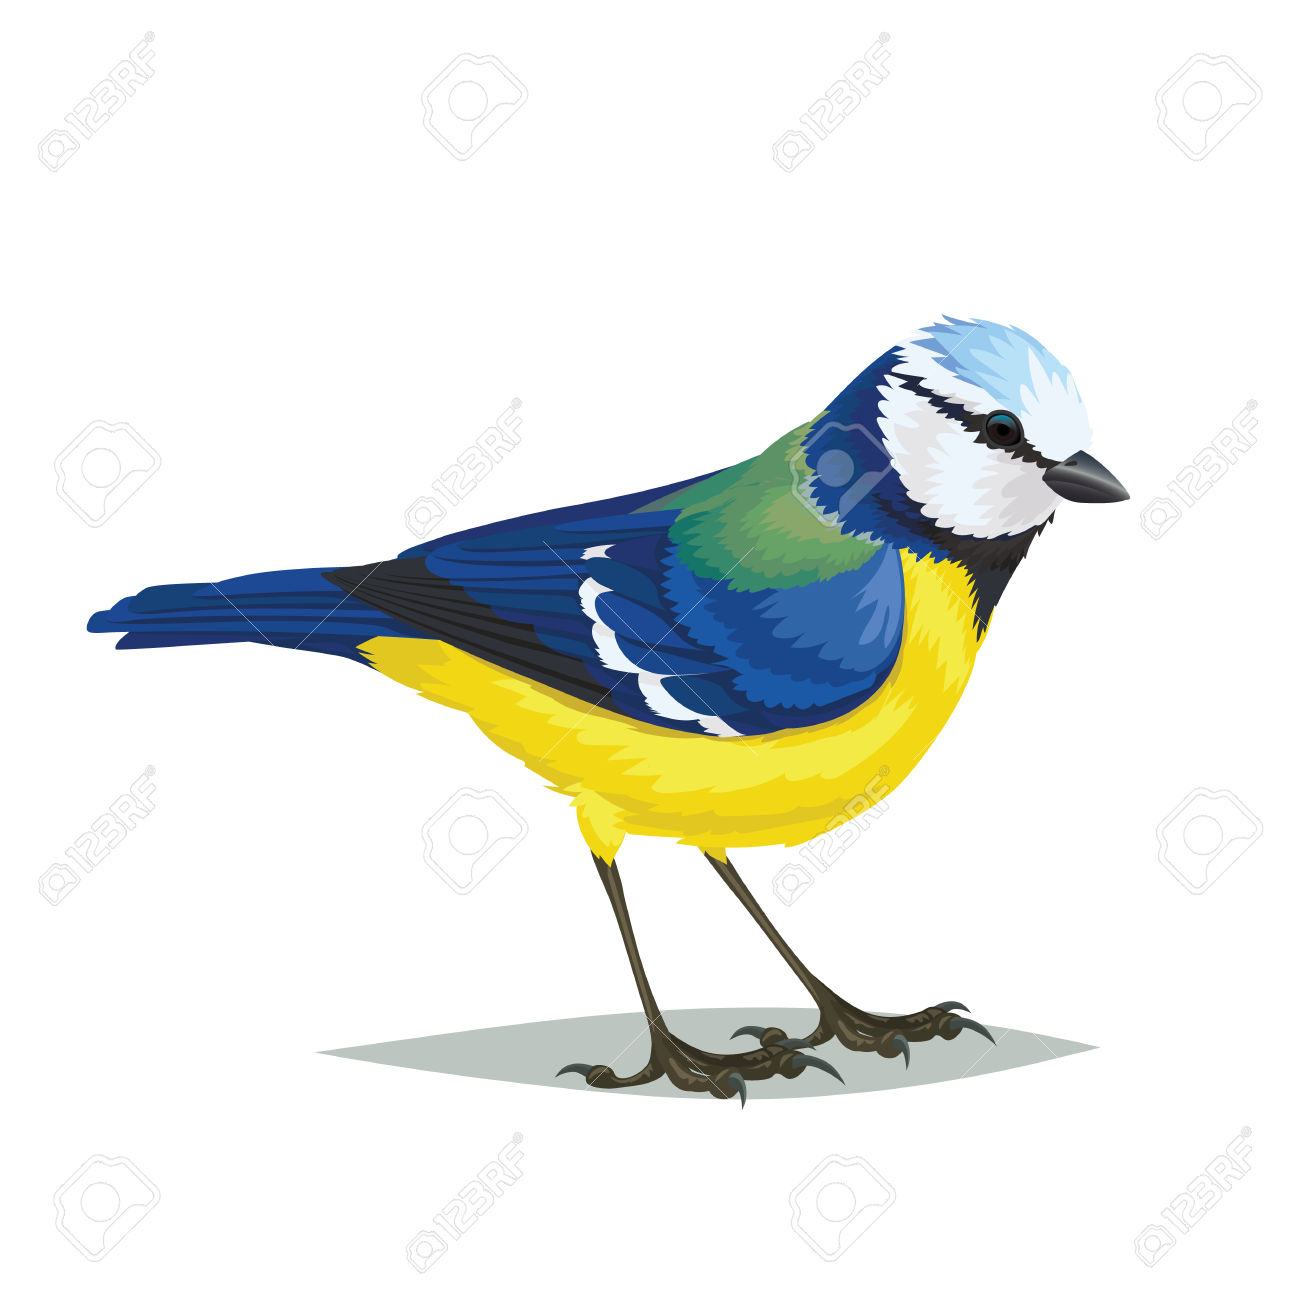 Eurasian Blue Tit clipart #16, Download drawings